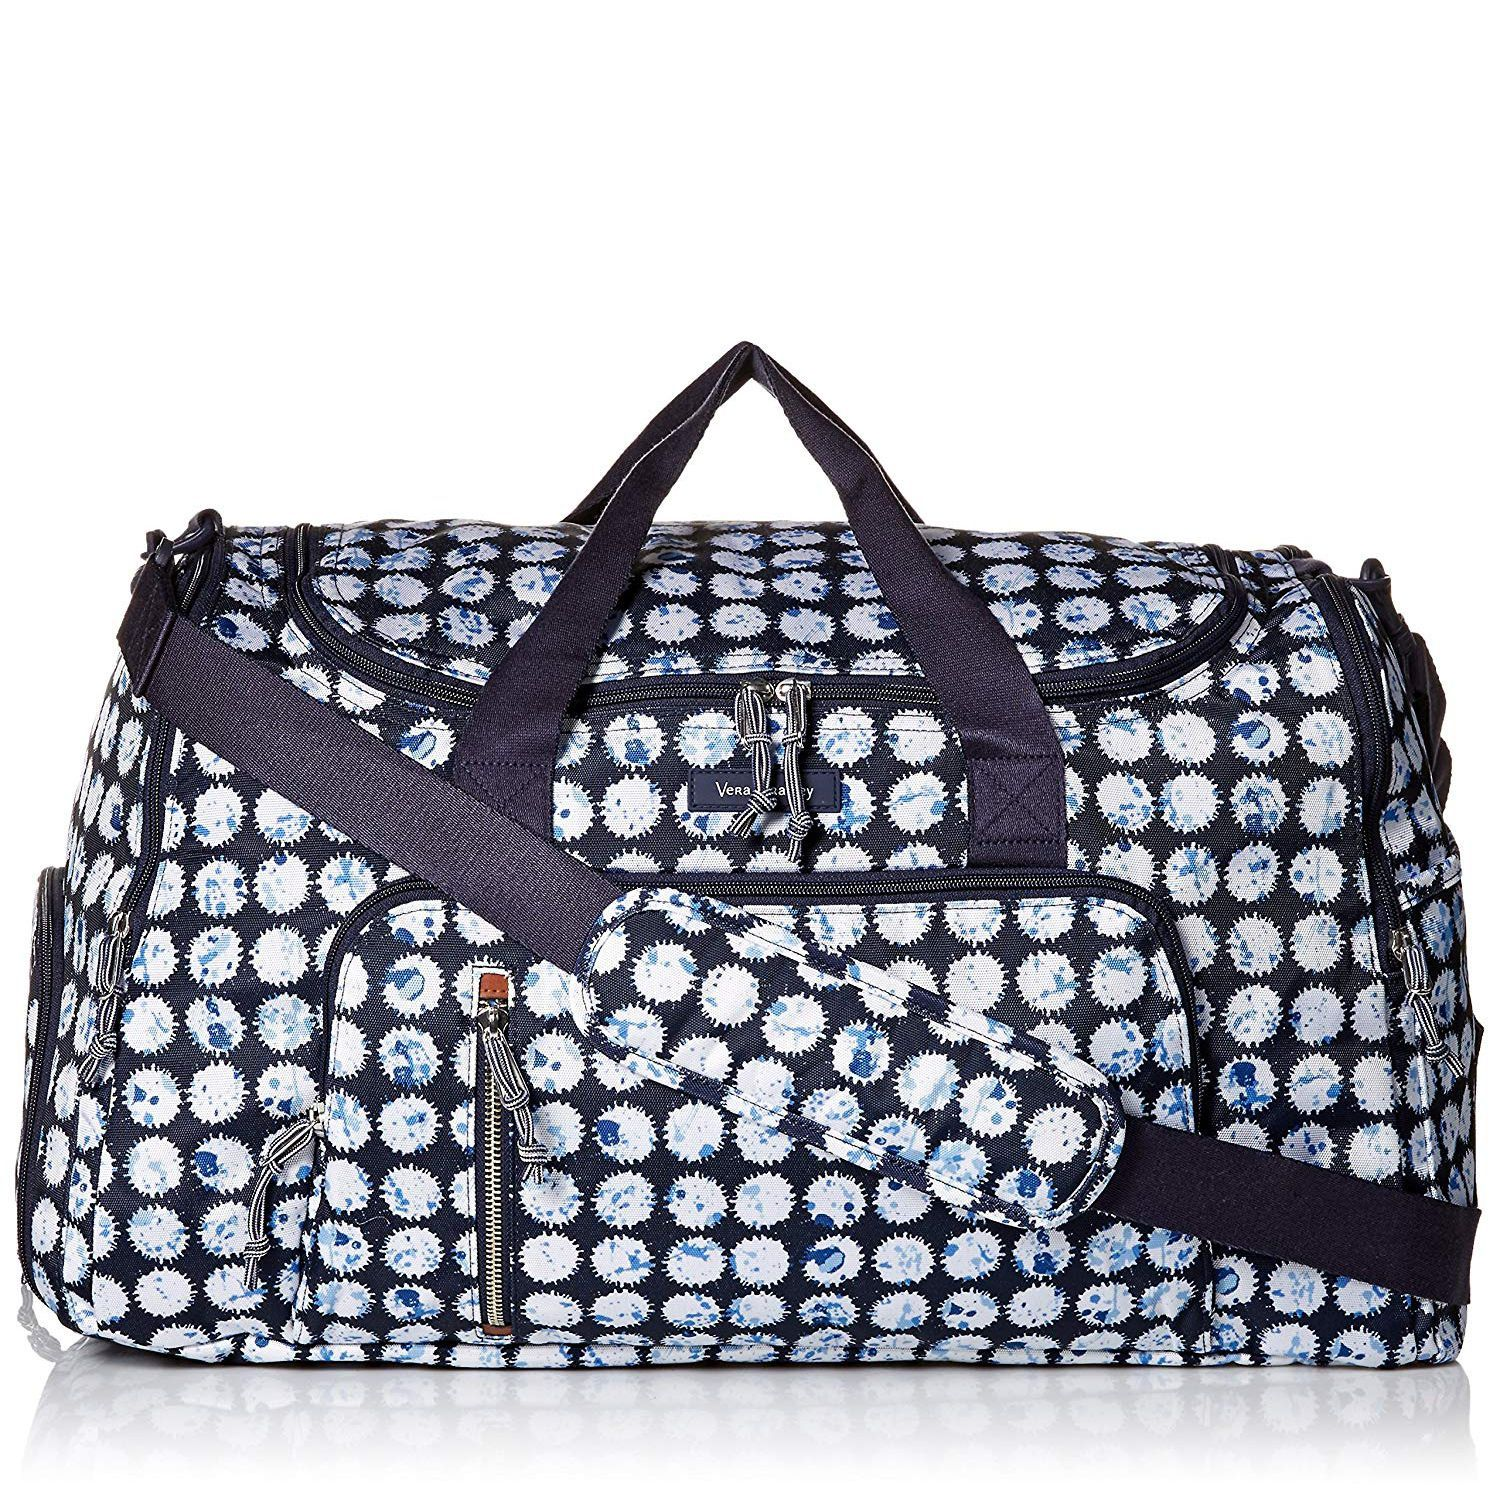 10 Cute Gym Bags That Are as Stylish as You